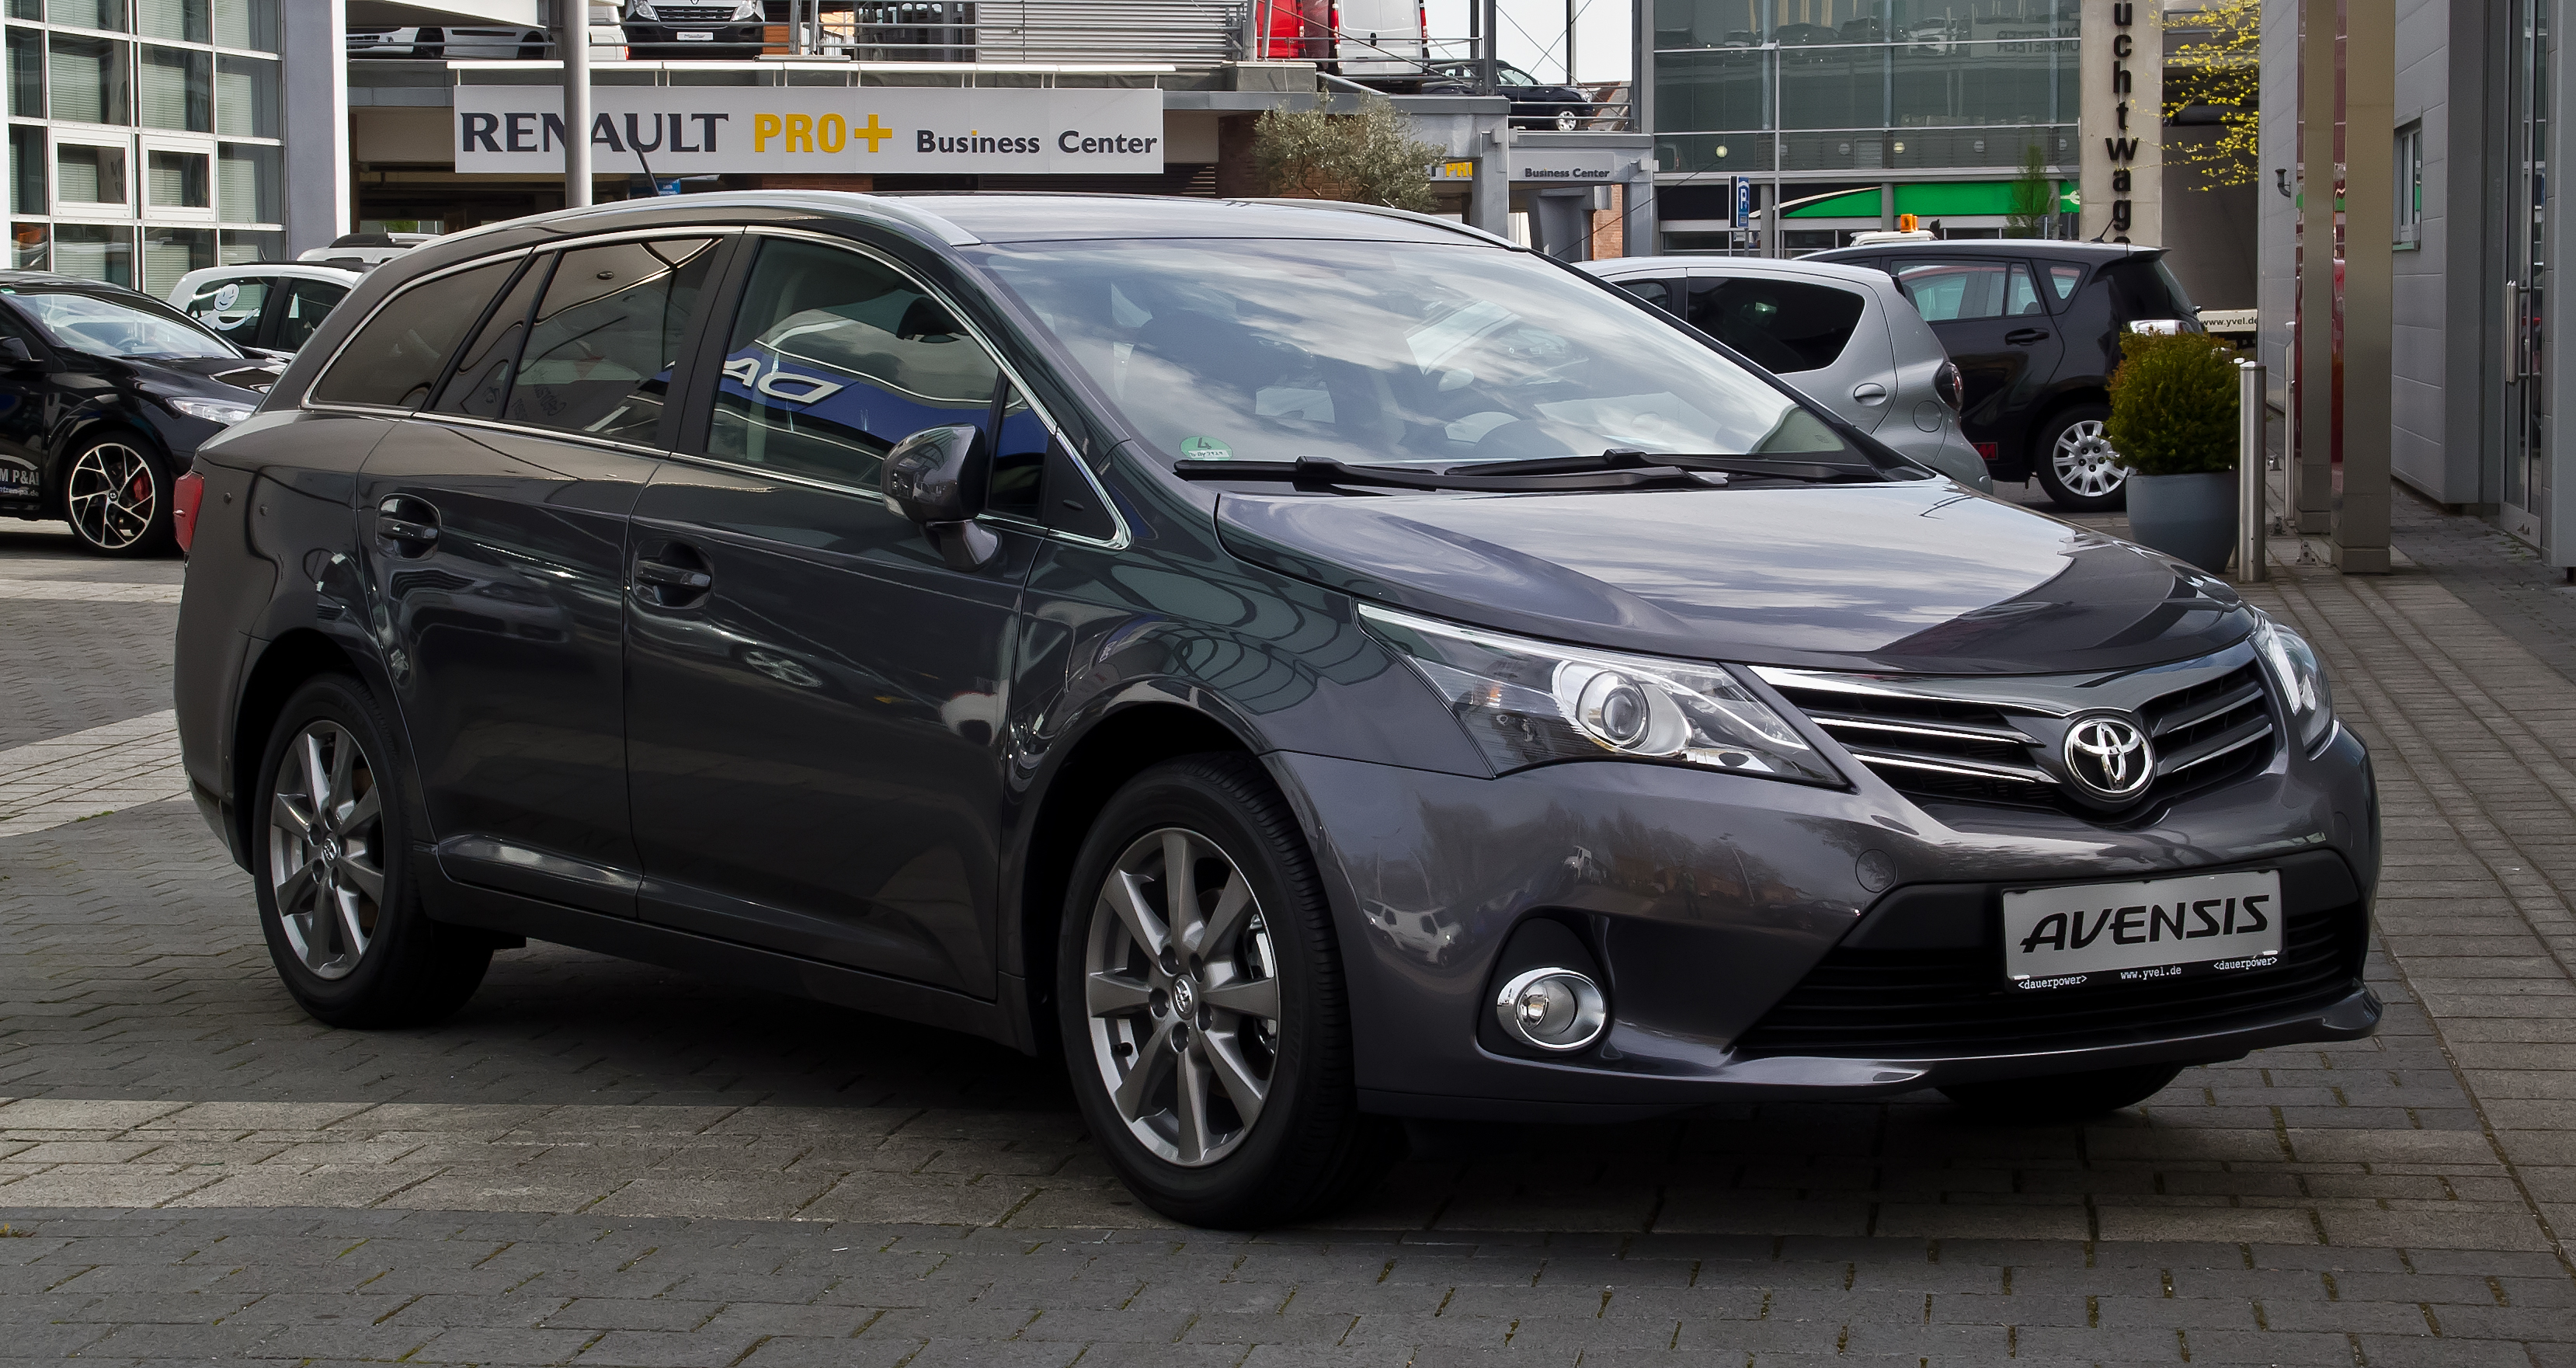 2012 toyota avensis iii pictures information and specs auto. Black Bedroom Furniture Sets. Home Design Ideas